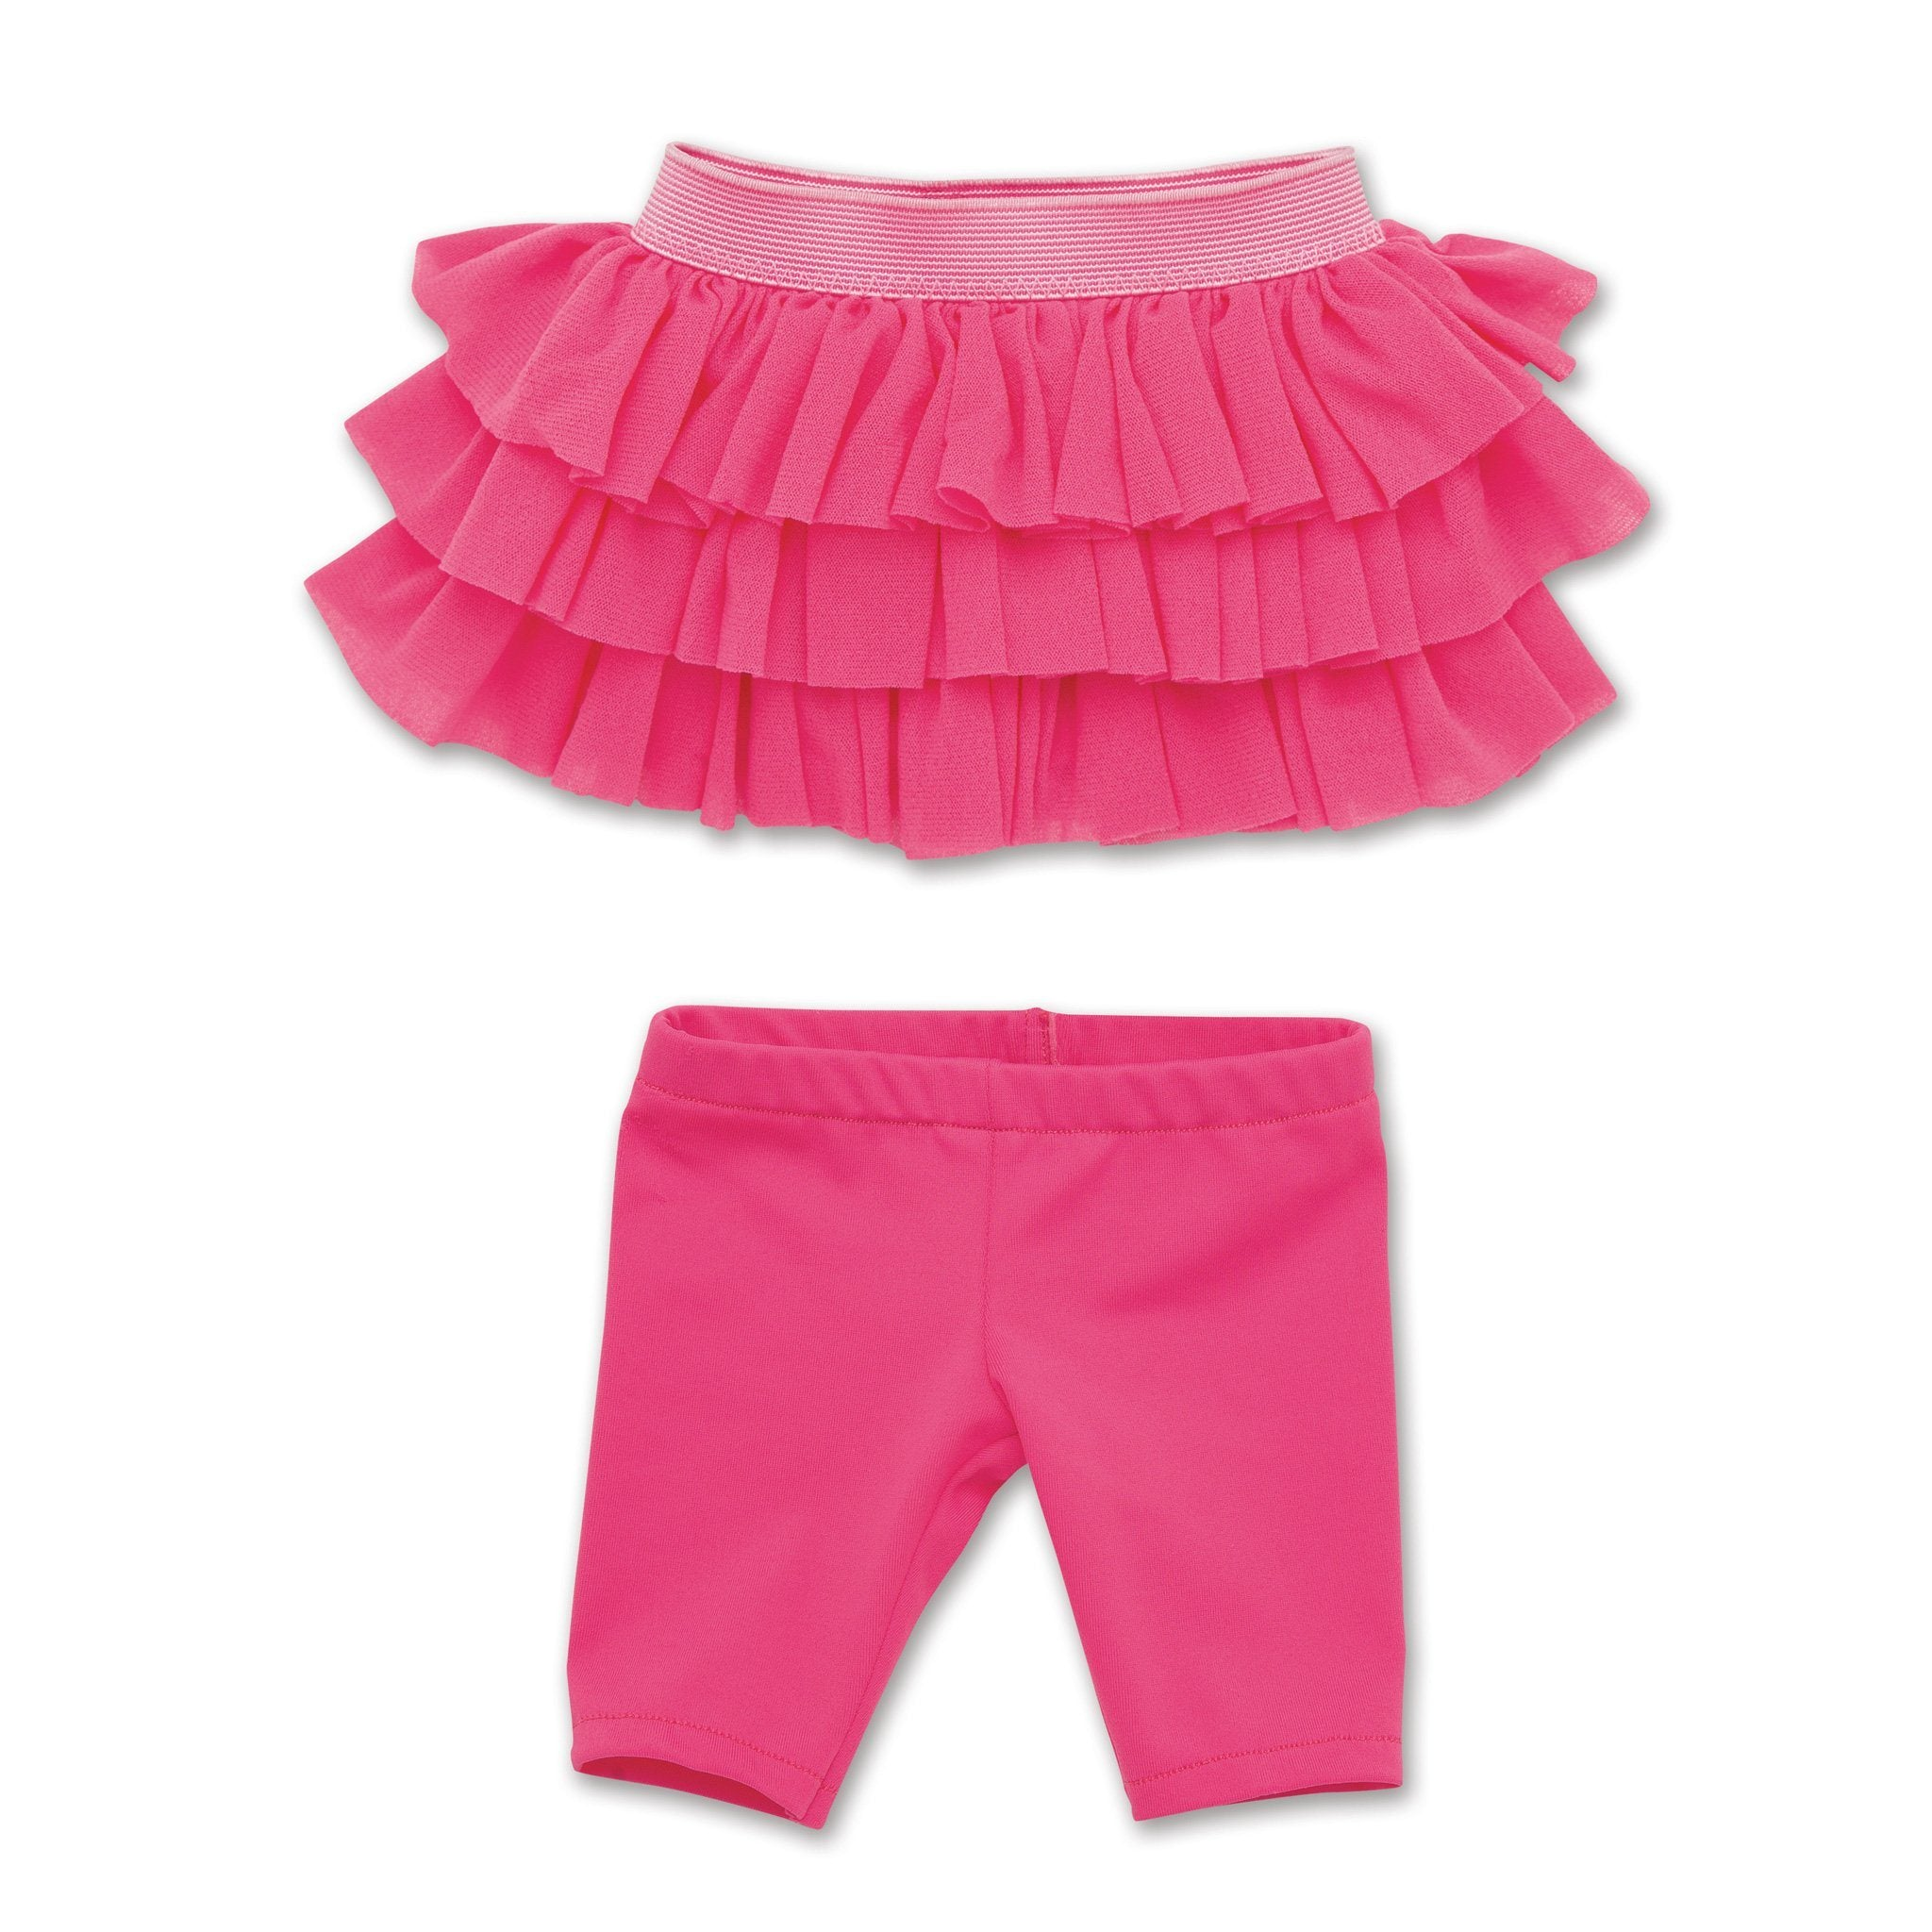 Tutu Cute pink ruffled skirt, and pink knee-length tights all 18 inch dolls.